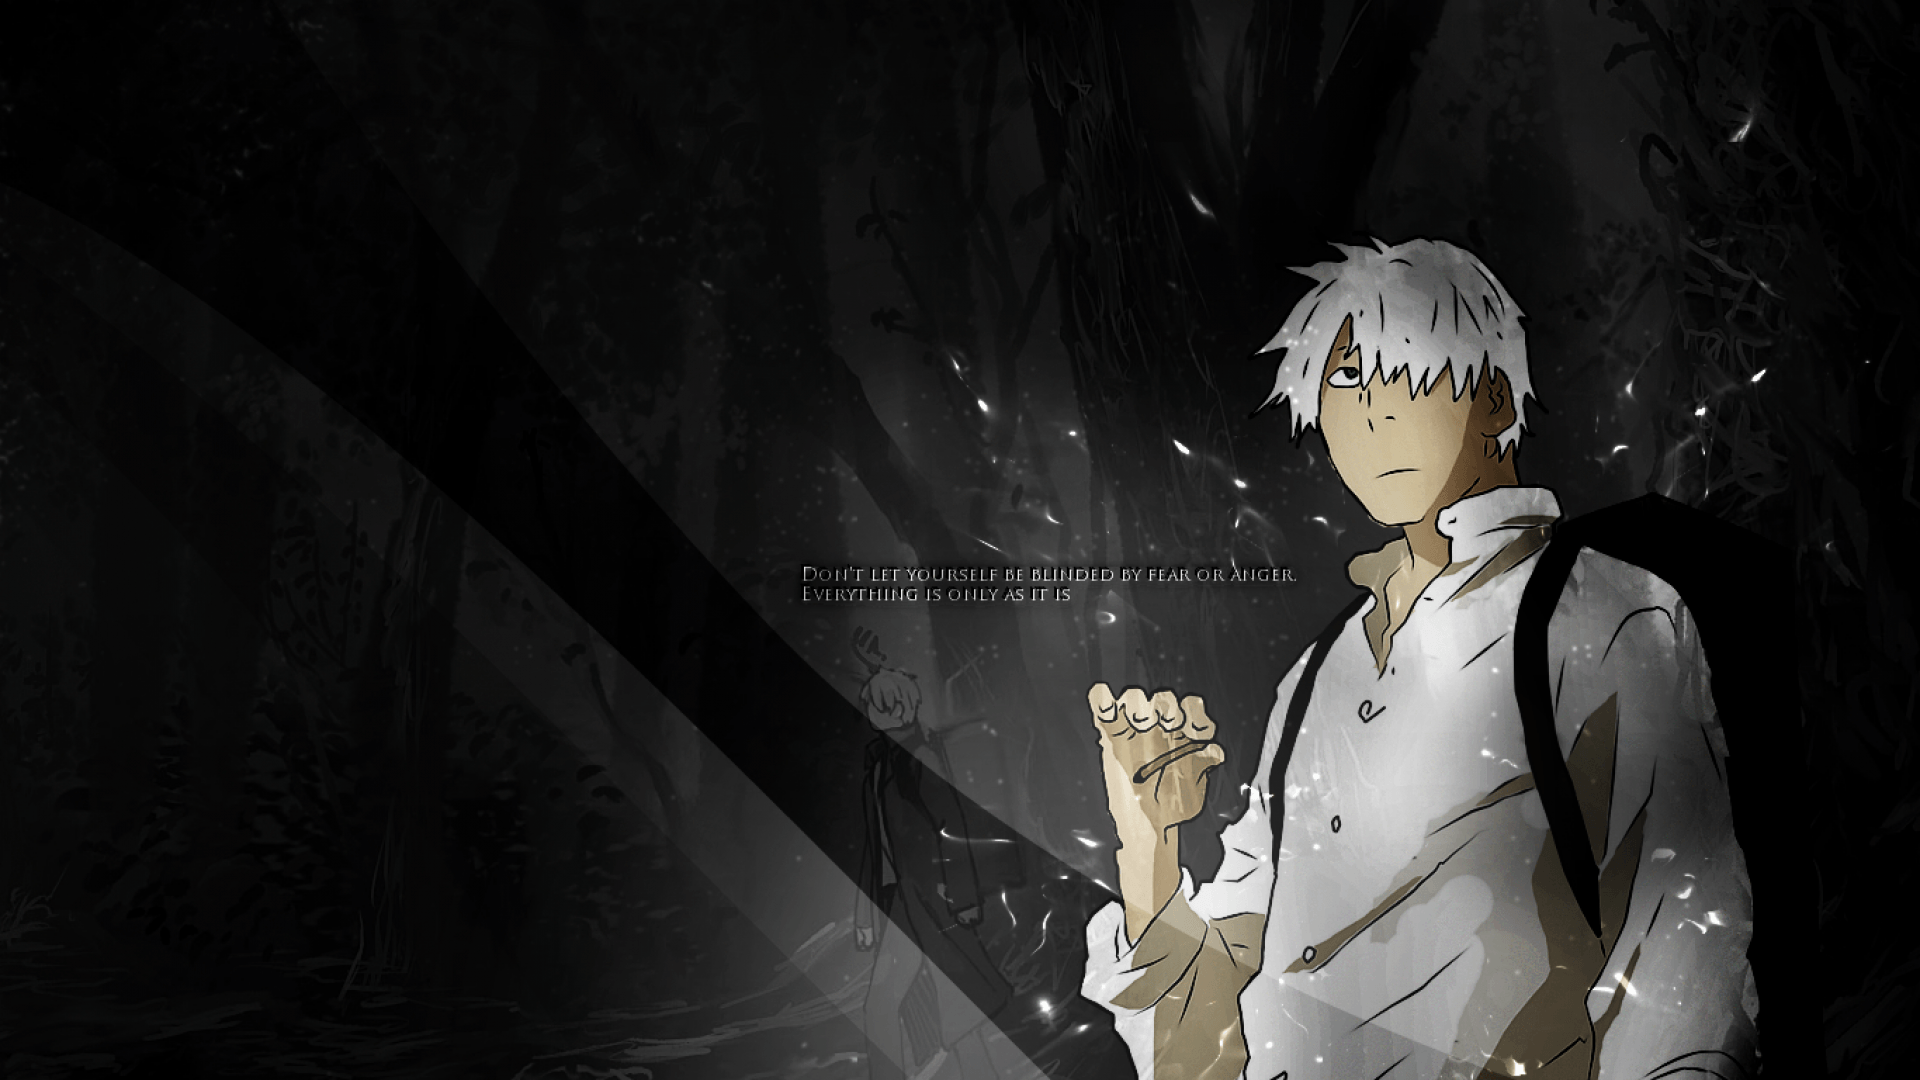 SimplyWallpapers: Ginko Mushishi anime manga desktop bakcgrounds